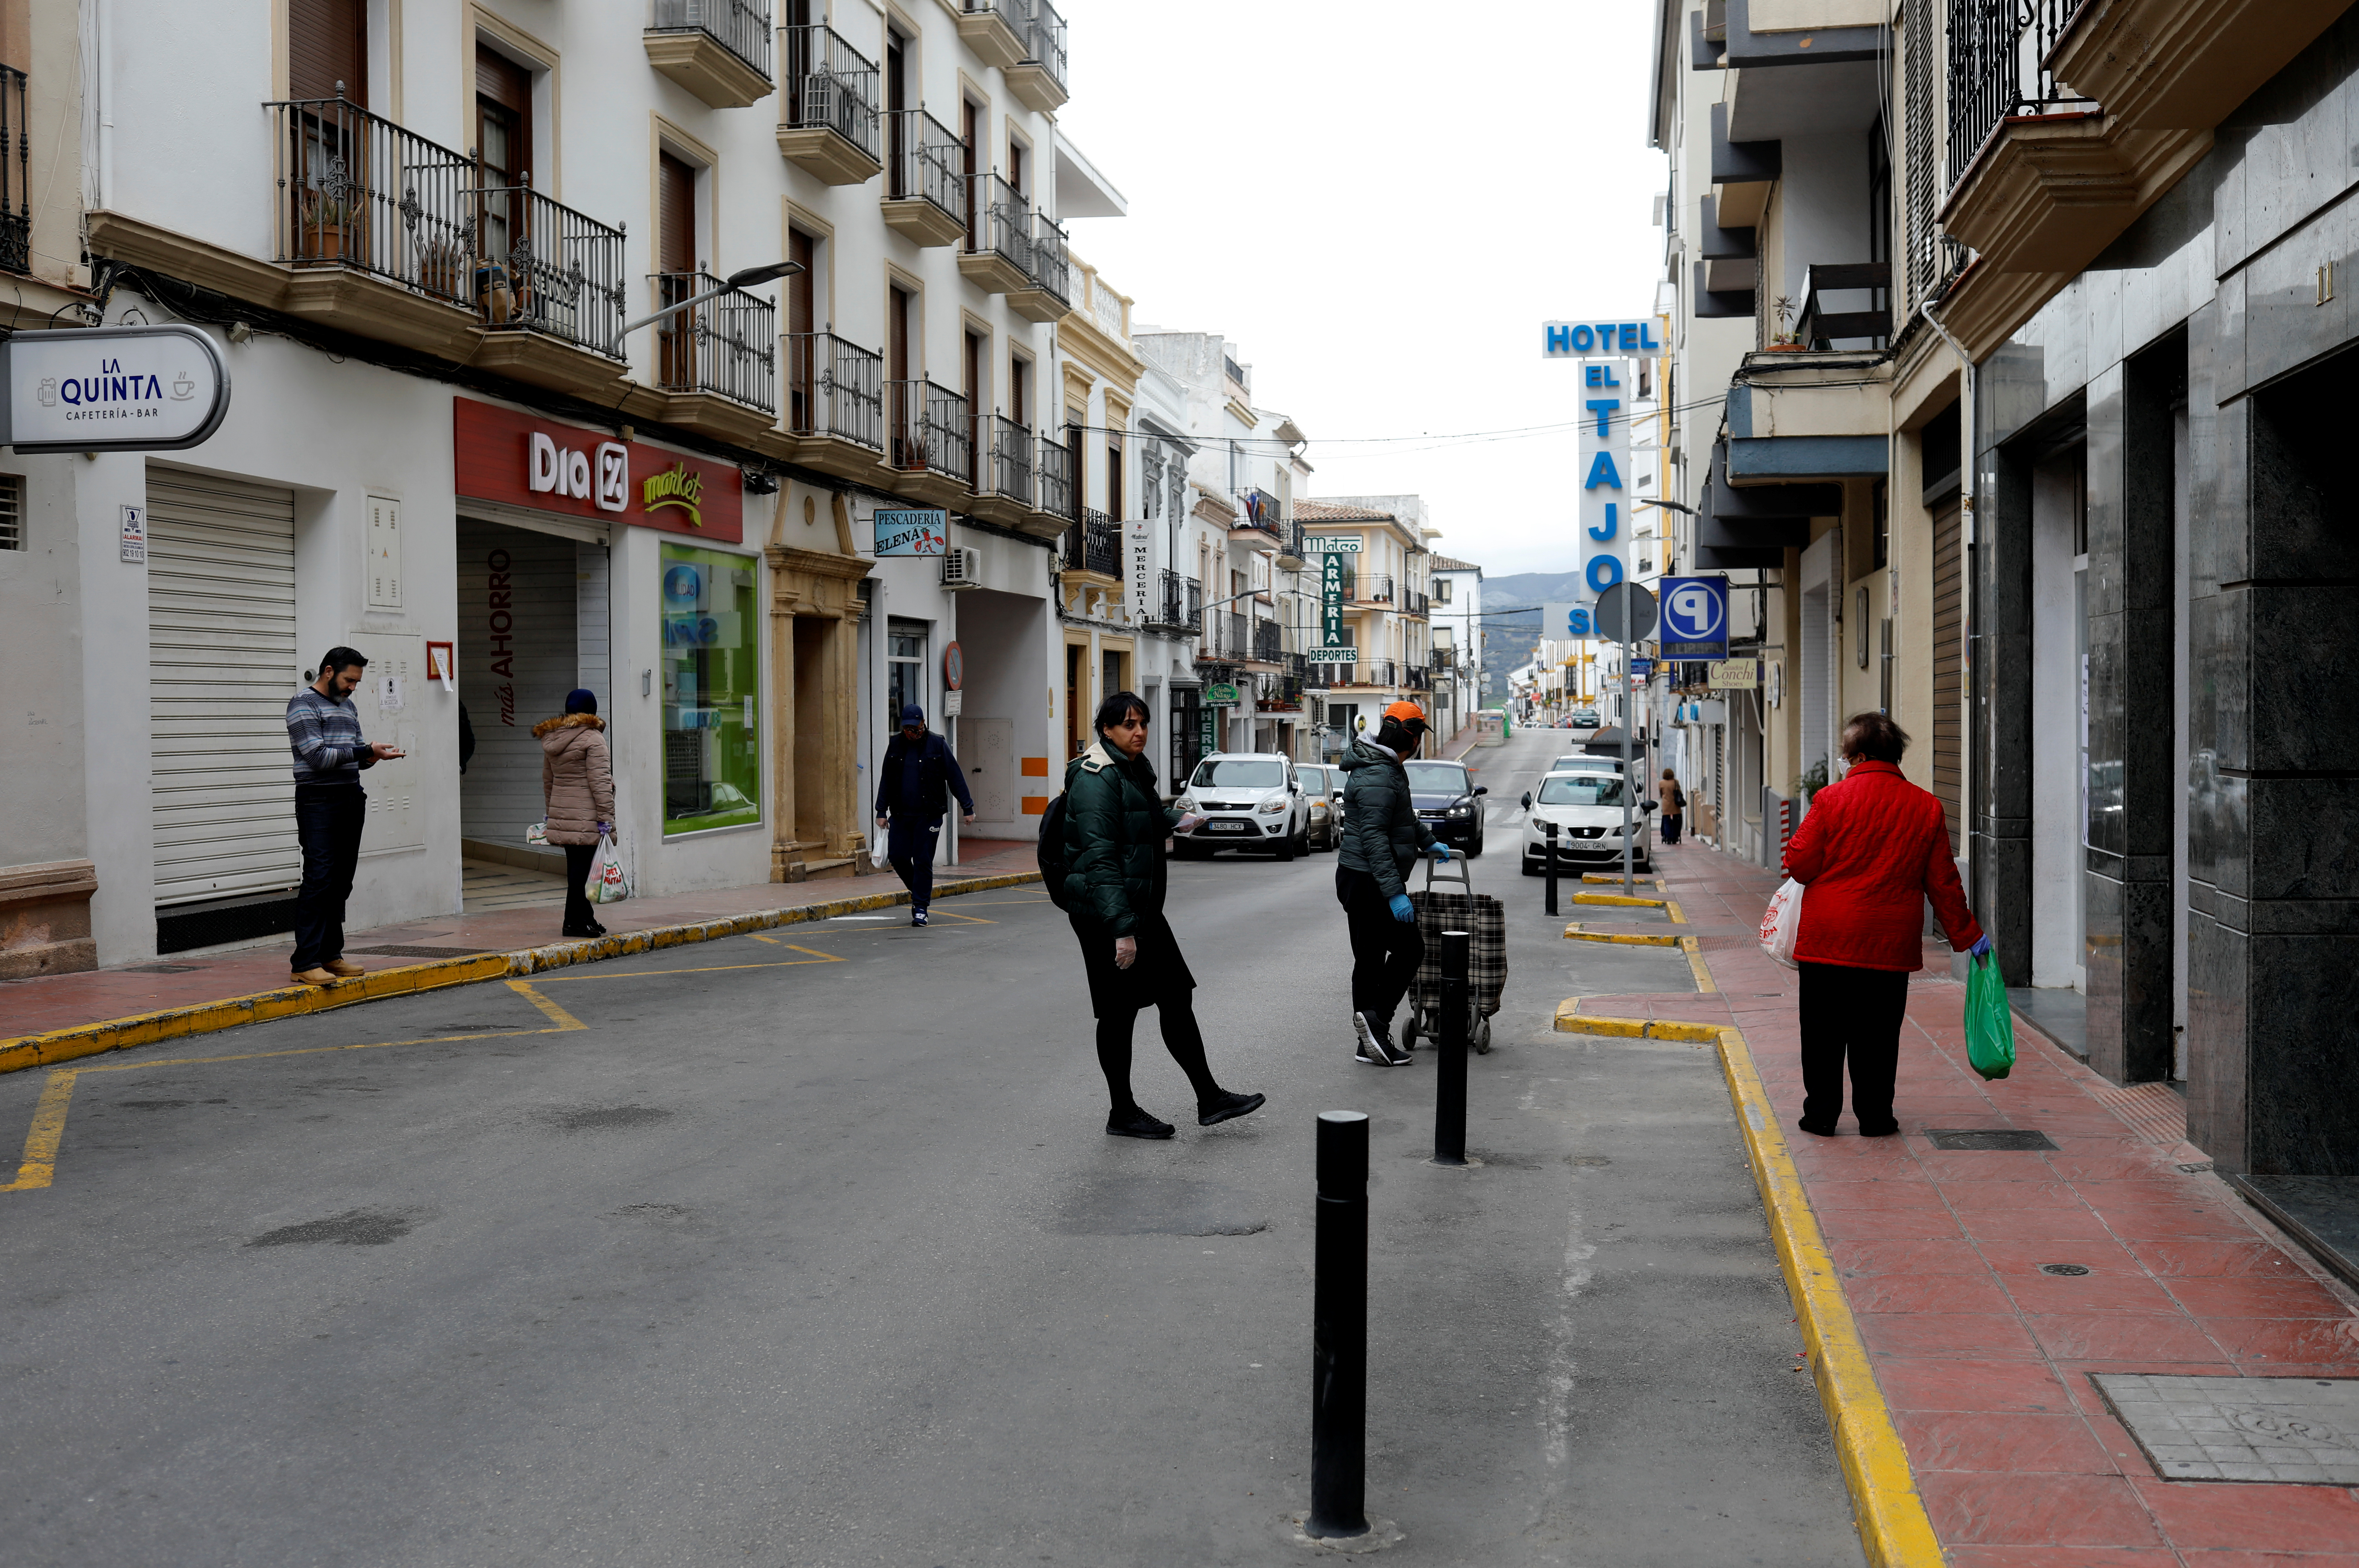 People wait to buy food outside a supermarket and a greengrocer's, during the coronavirus disease (COVID-19) outbreak, in Ronda, southern Spain April 4, 2020. Photo: Reuters